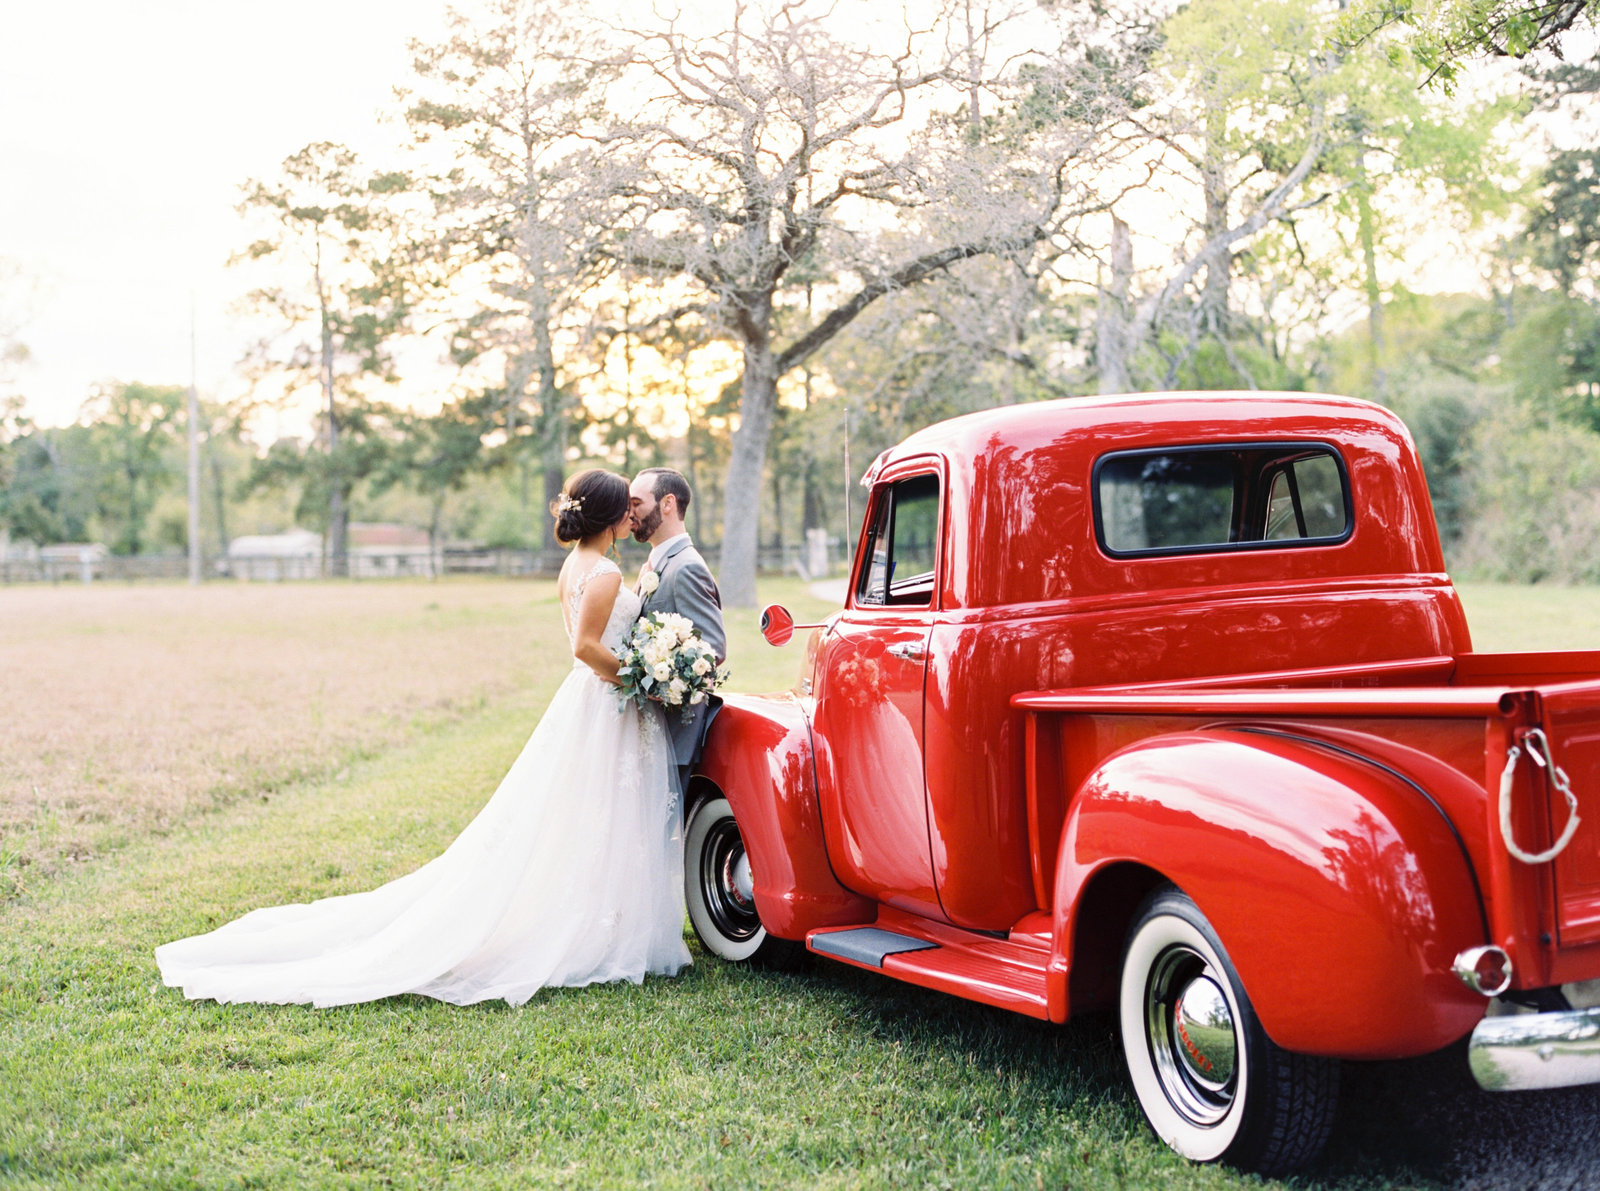 Vintage Red Truck at a Houston Texas wedding with bride and groom kissing.